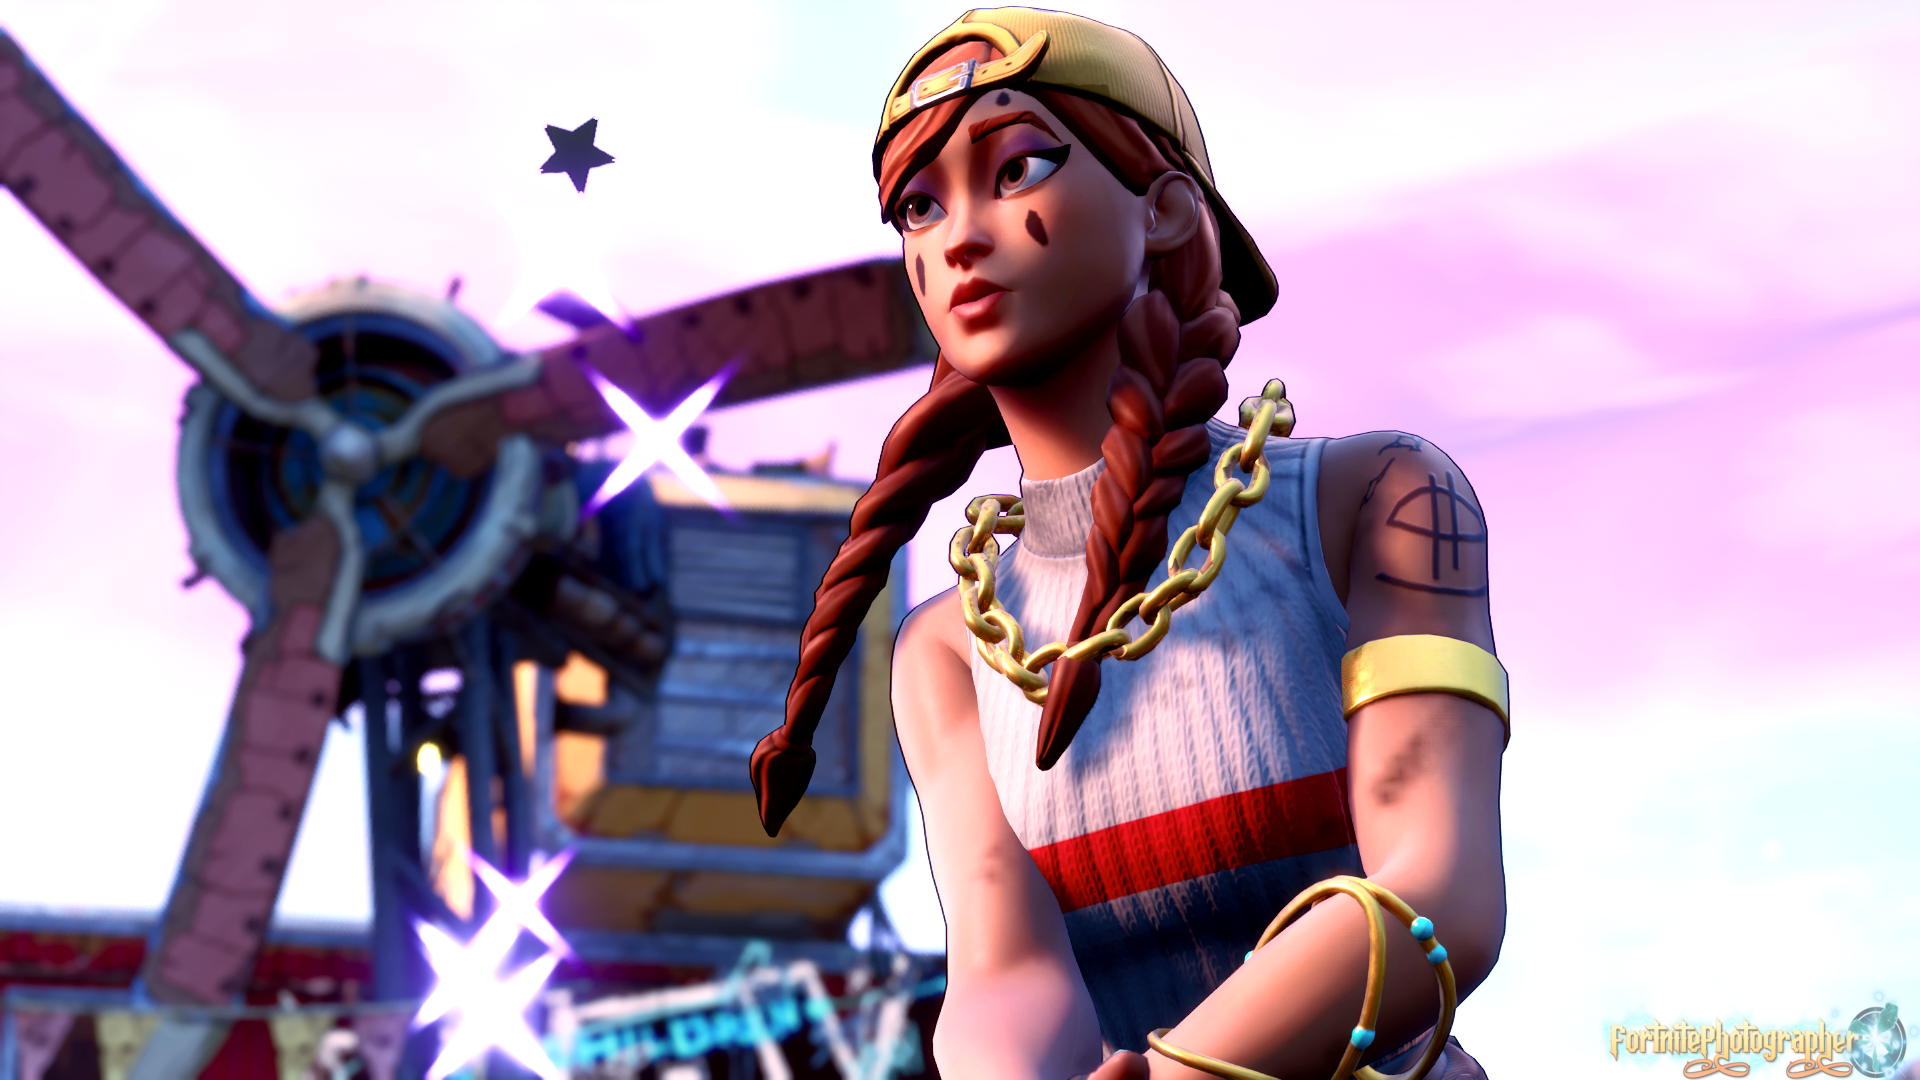 Goddess Of The Sand Aura Is So Cute Thanks For All The Support And Sharing Aura Set 6 2 4 Fnphootographer On Twitter Gamer Pics Aura Fortnite